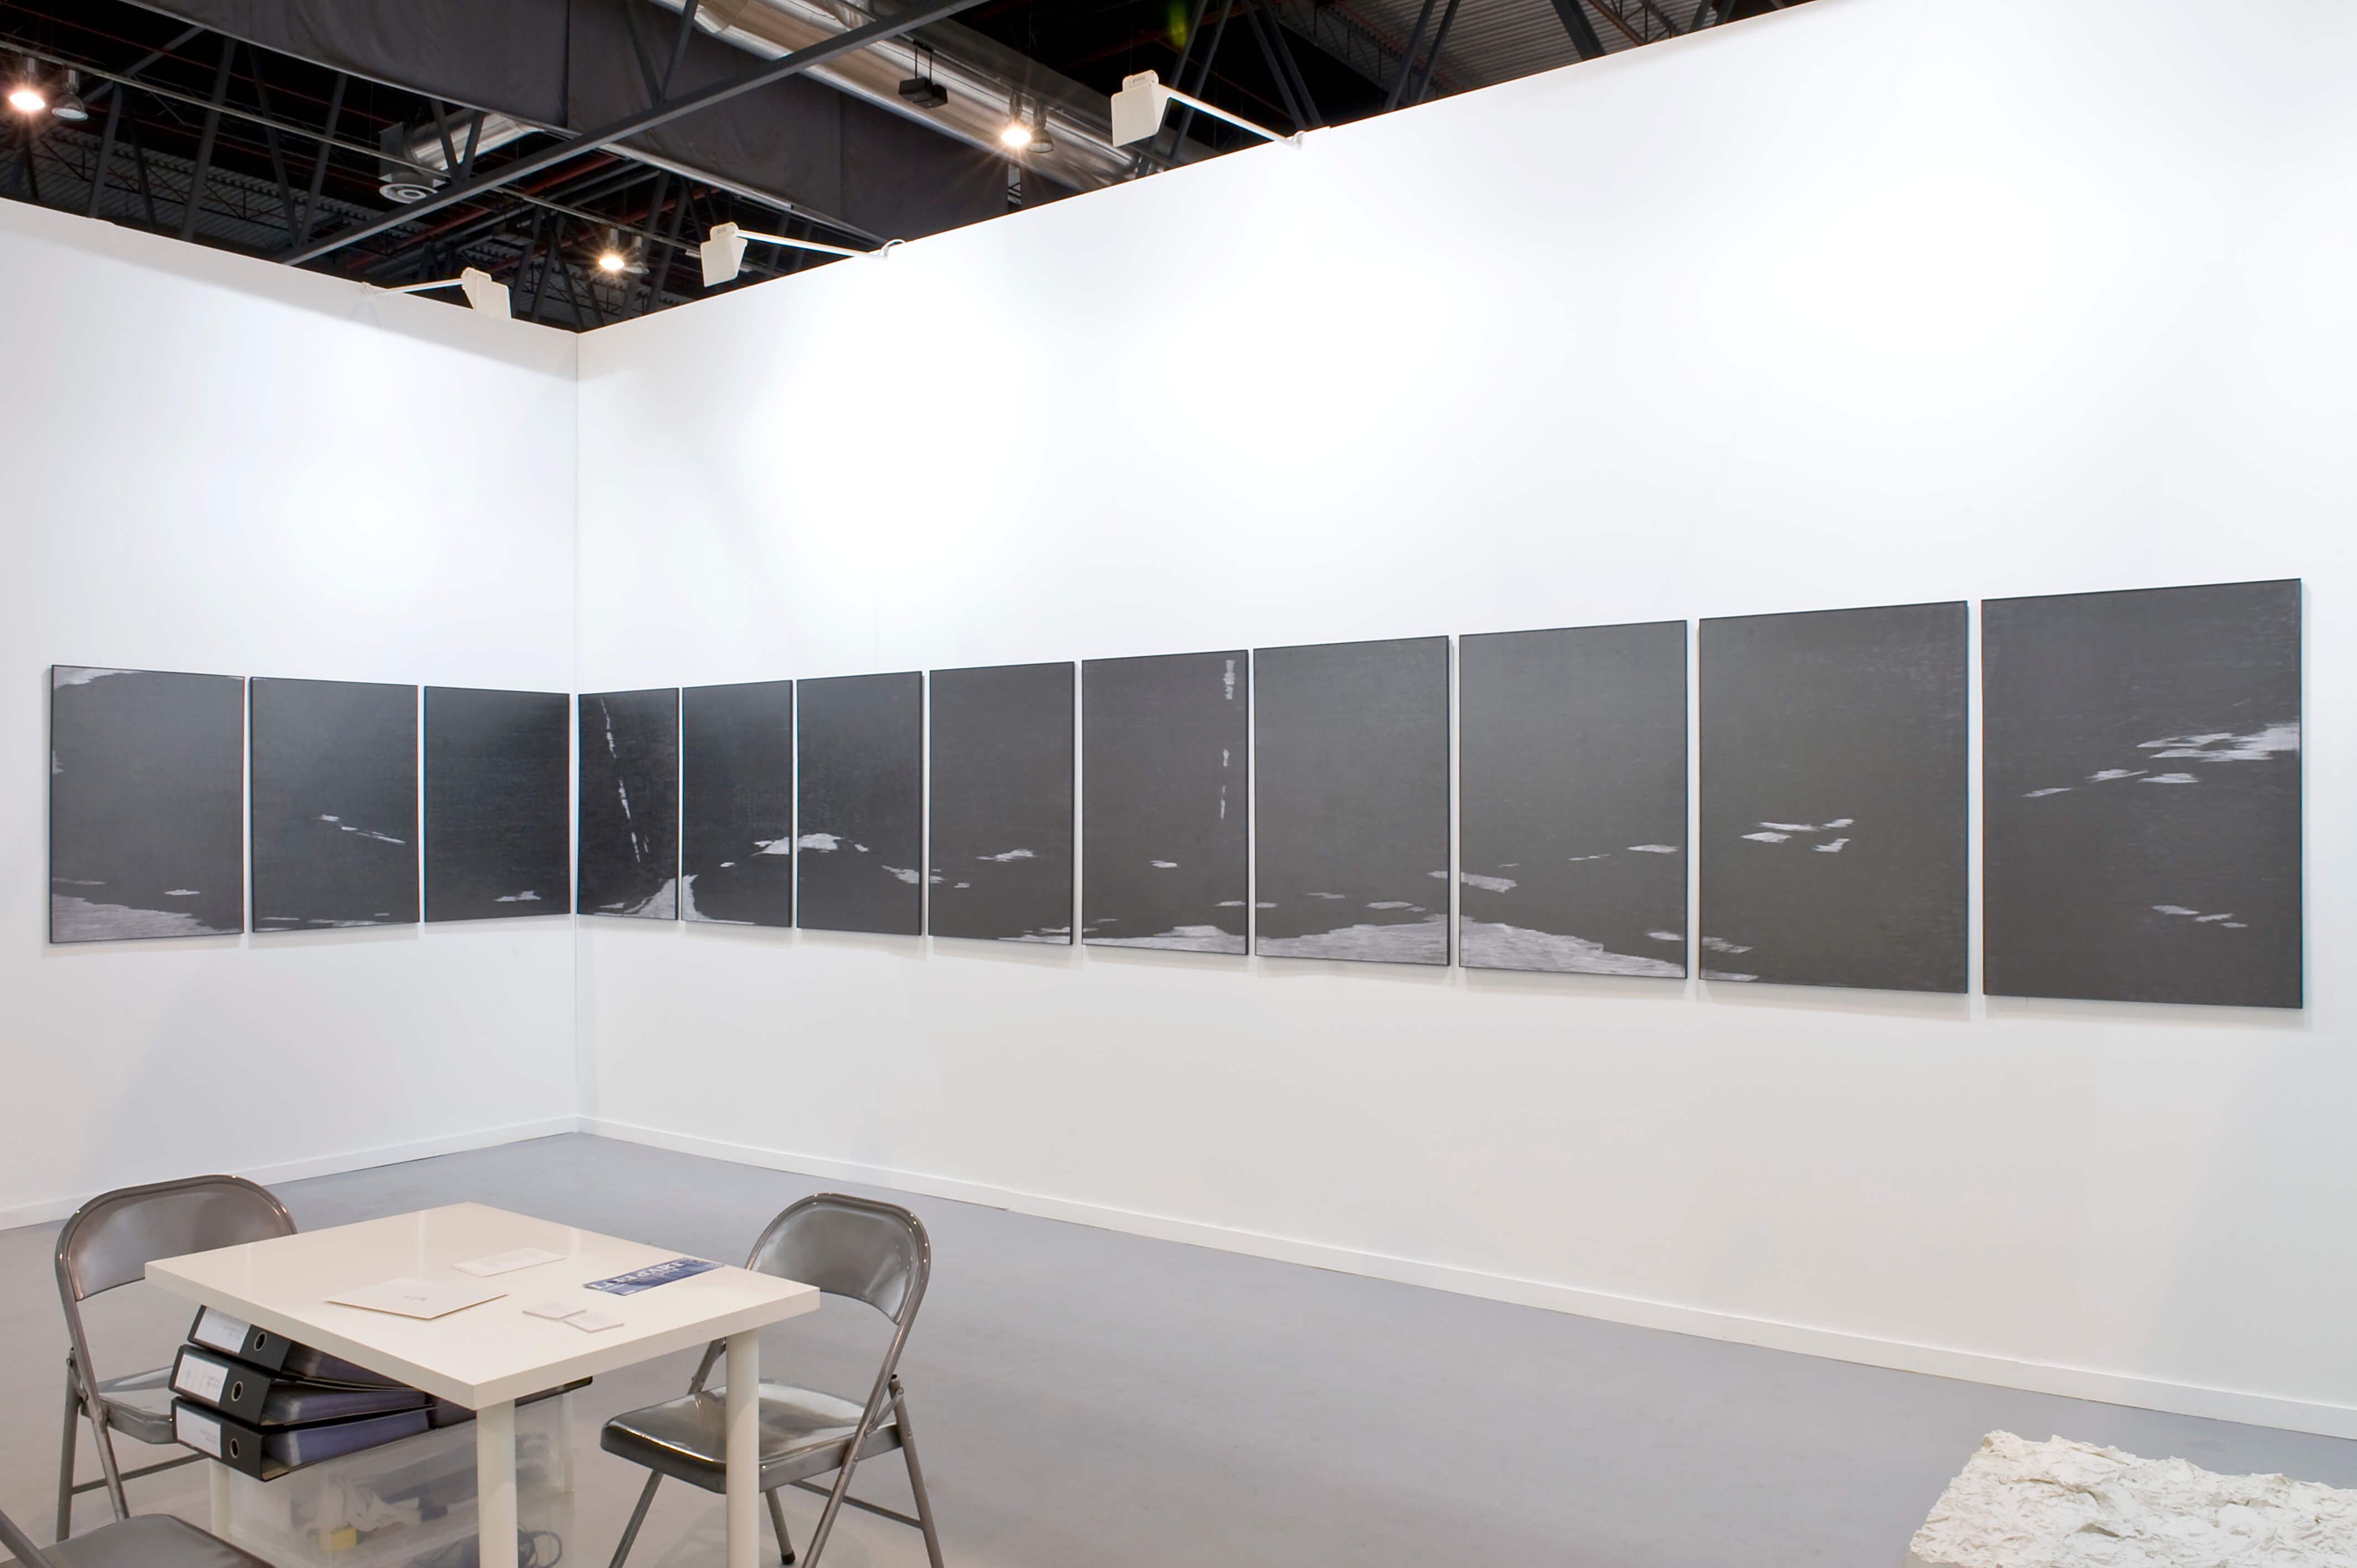 Installation view: ProjecteSD, 9D11 | ARCO 2014 | ProjecteSD